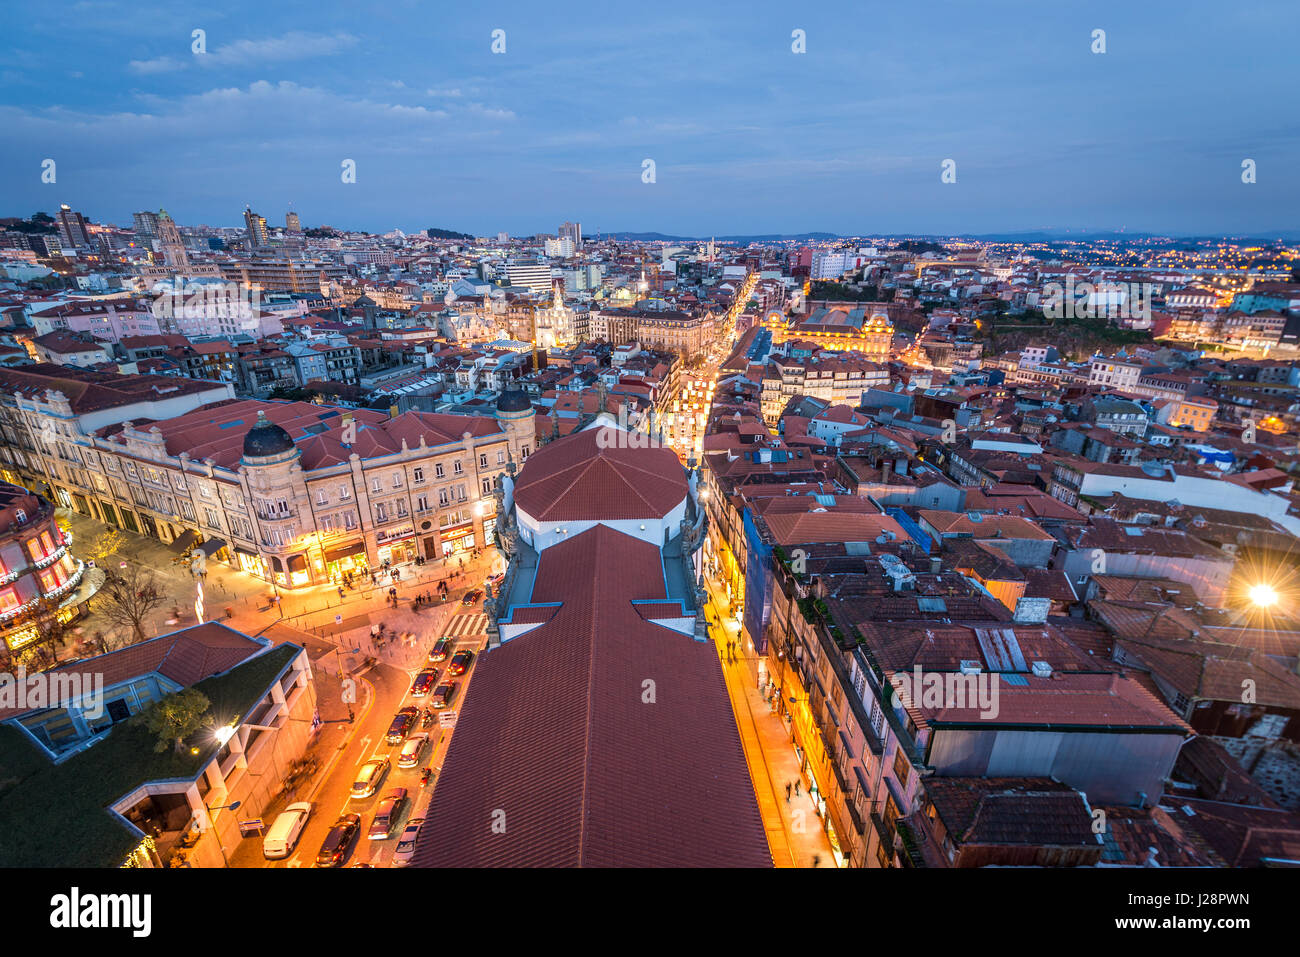 Evening in Porto, second largest city in Portugal. Aerial view from bell tower of Clerigos Church - Stock Image